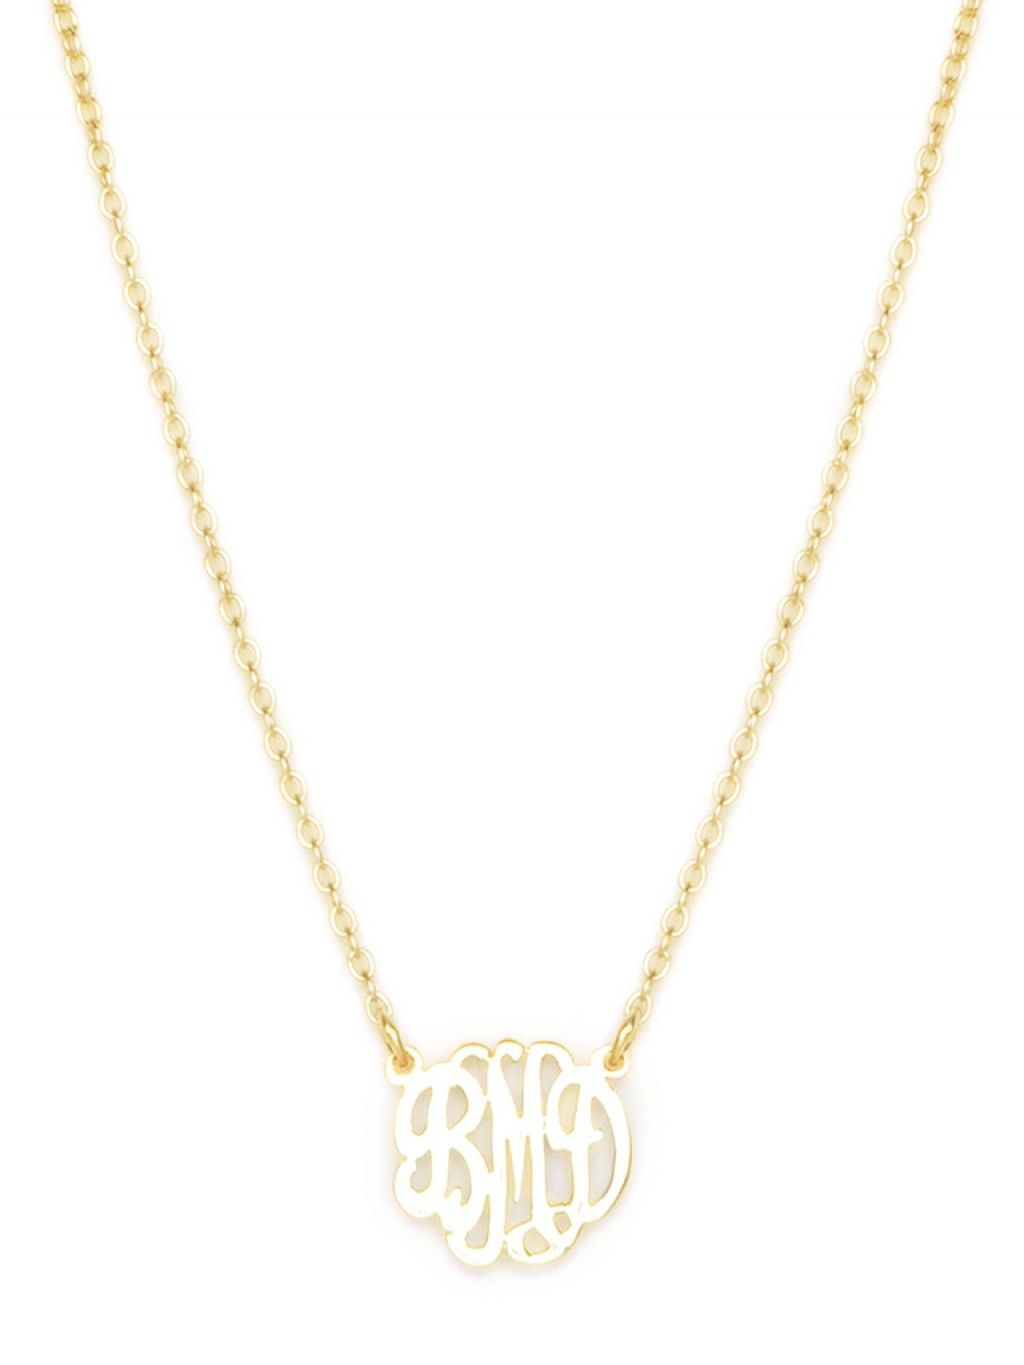 Mini Monogram Necklace Have Been